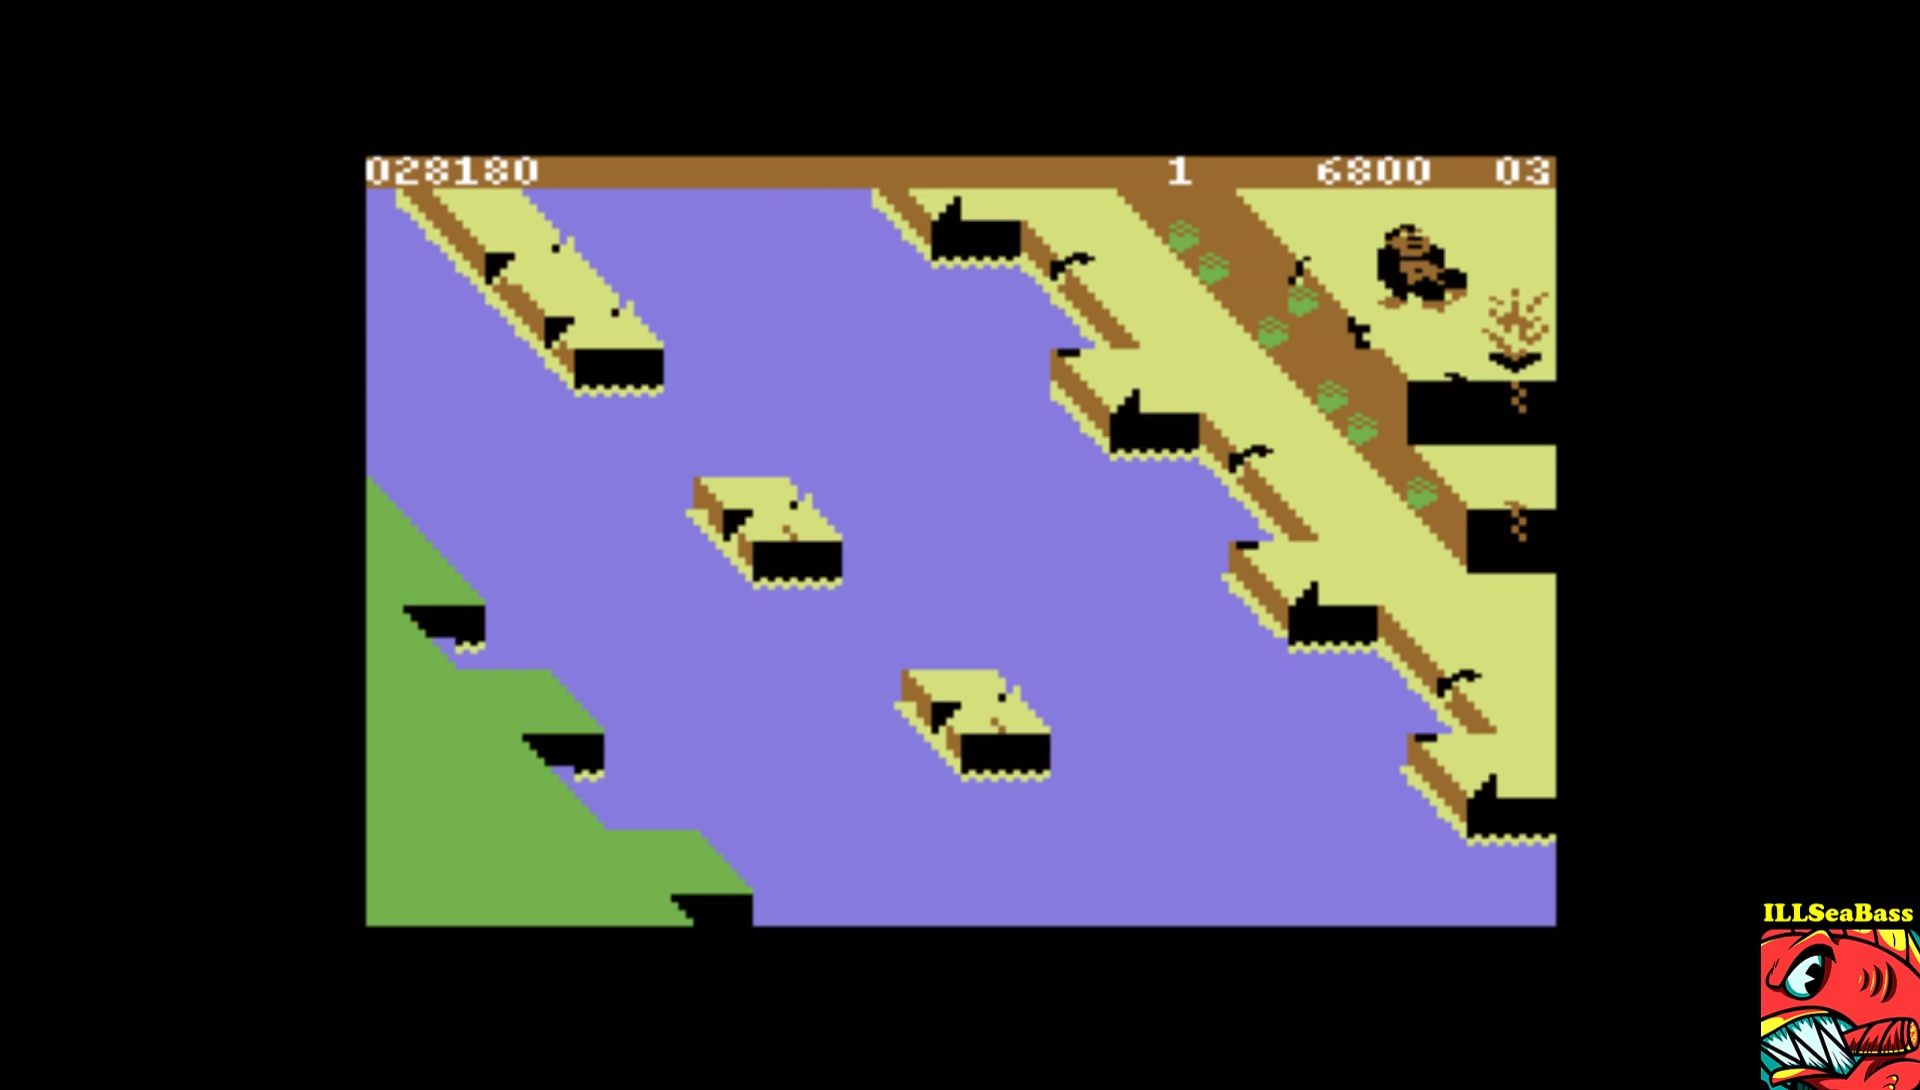 ILLSeaBass: Congo Bongo [1983 Version] (Commodore 64 Emulated) 28,180 points on 2017-02-14 01:00:04